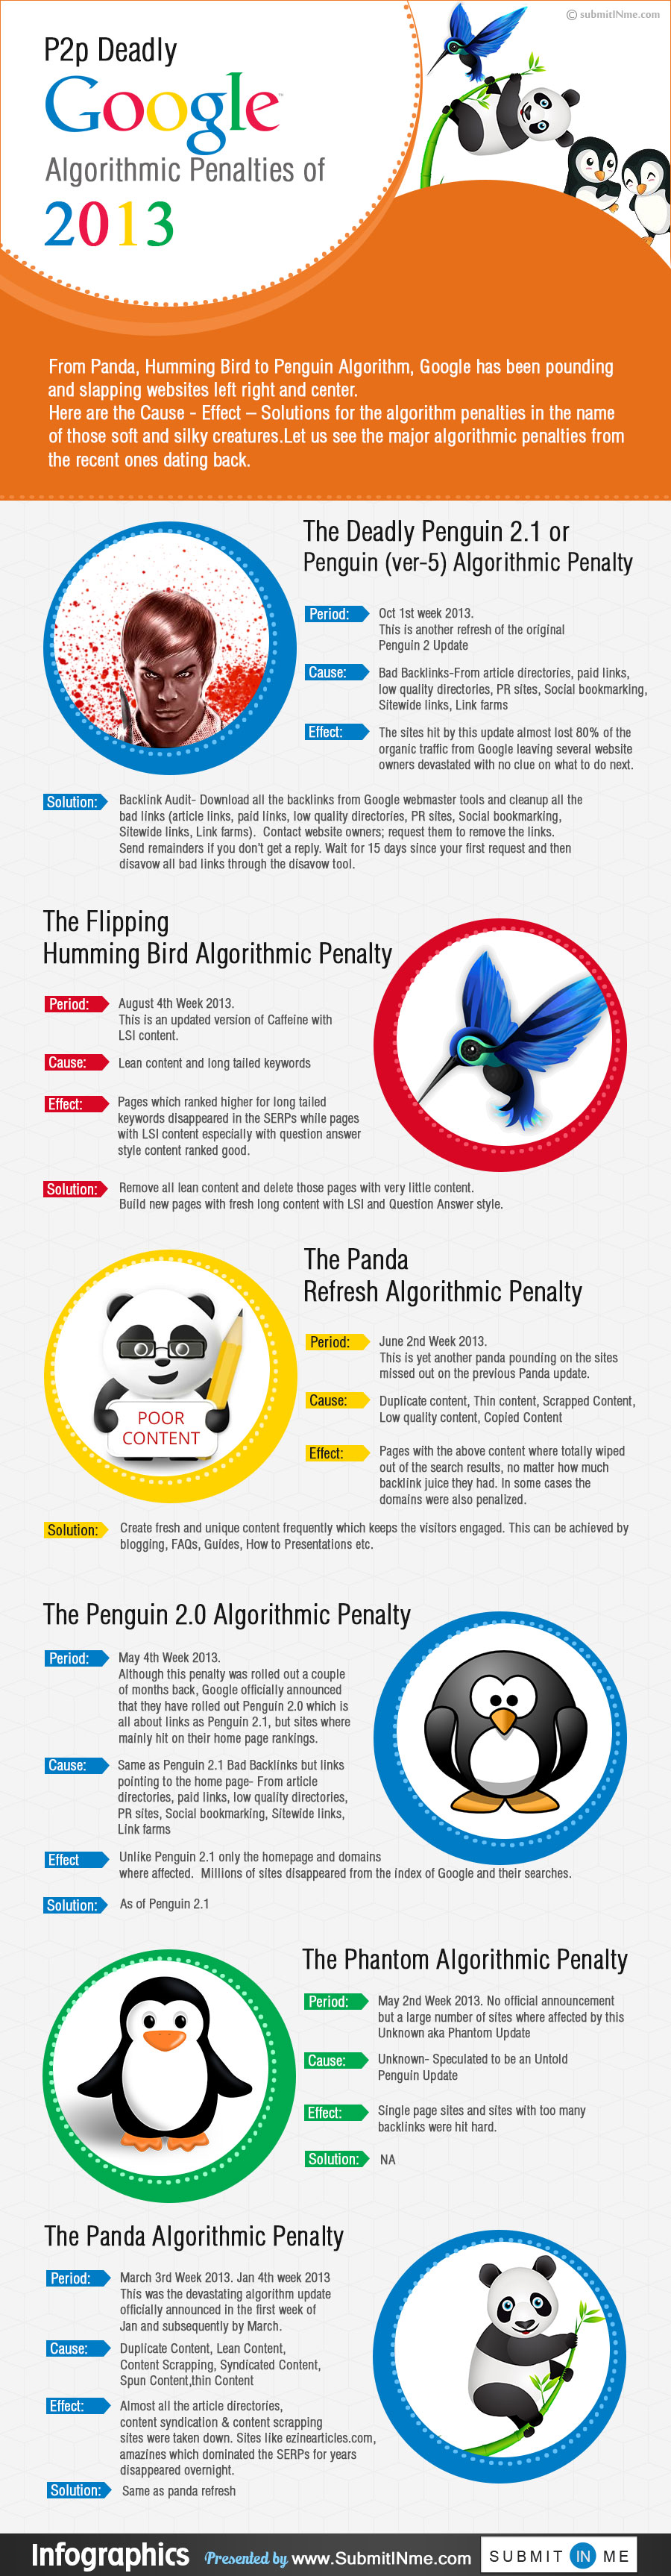 07 P2p-Deadly-Google-algorithm